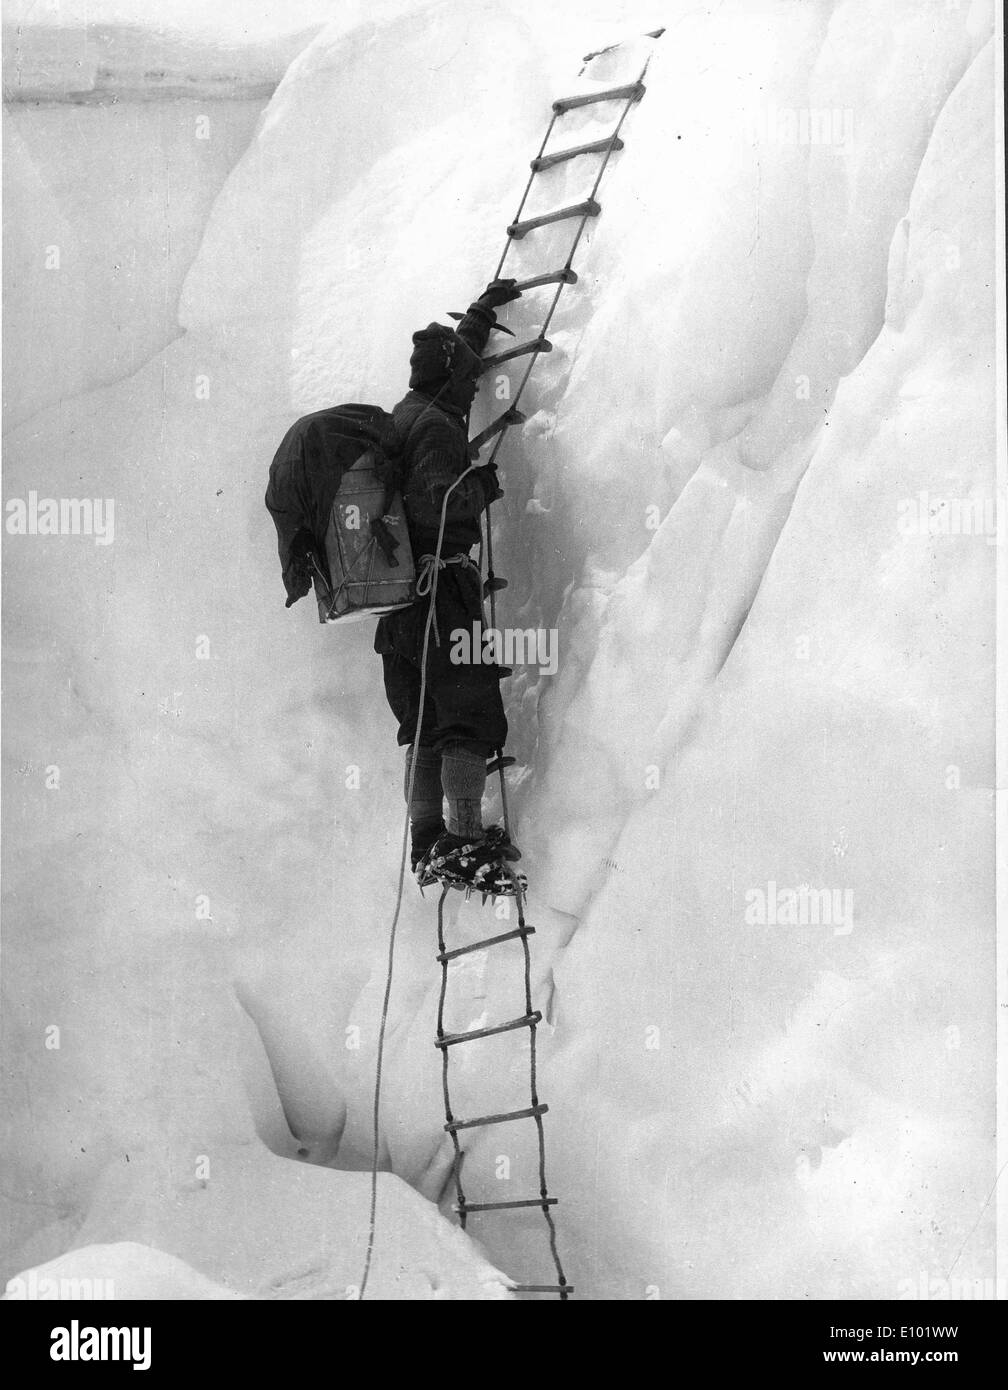 MOUNT EVEREST explorer climbing an icy side by ladder - Stock Image